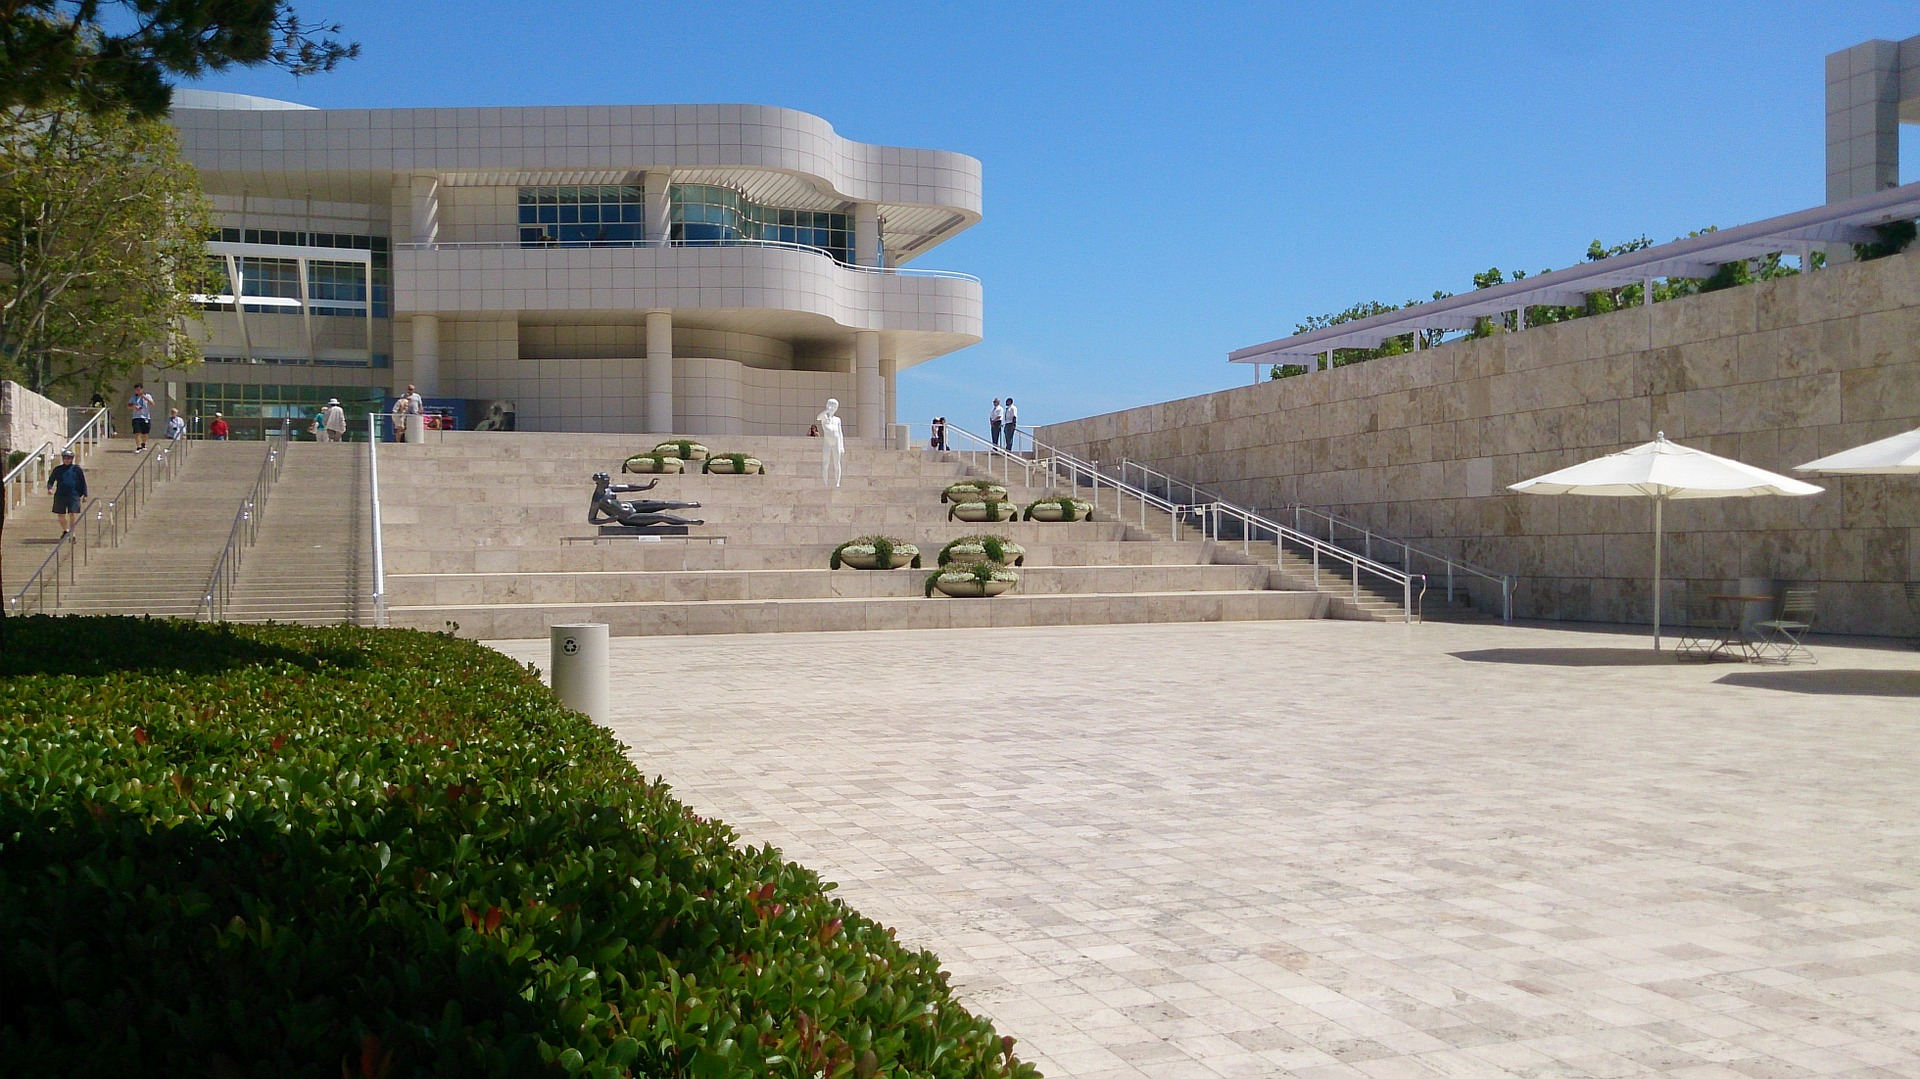 J. Paul Getty Museum, Los Angeles